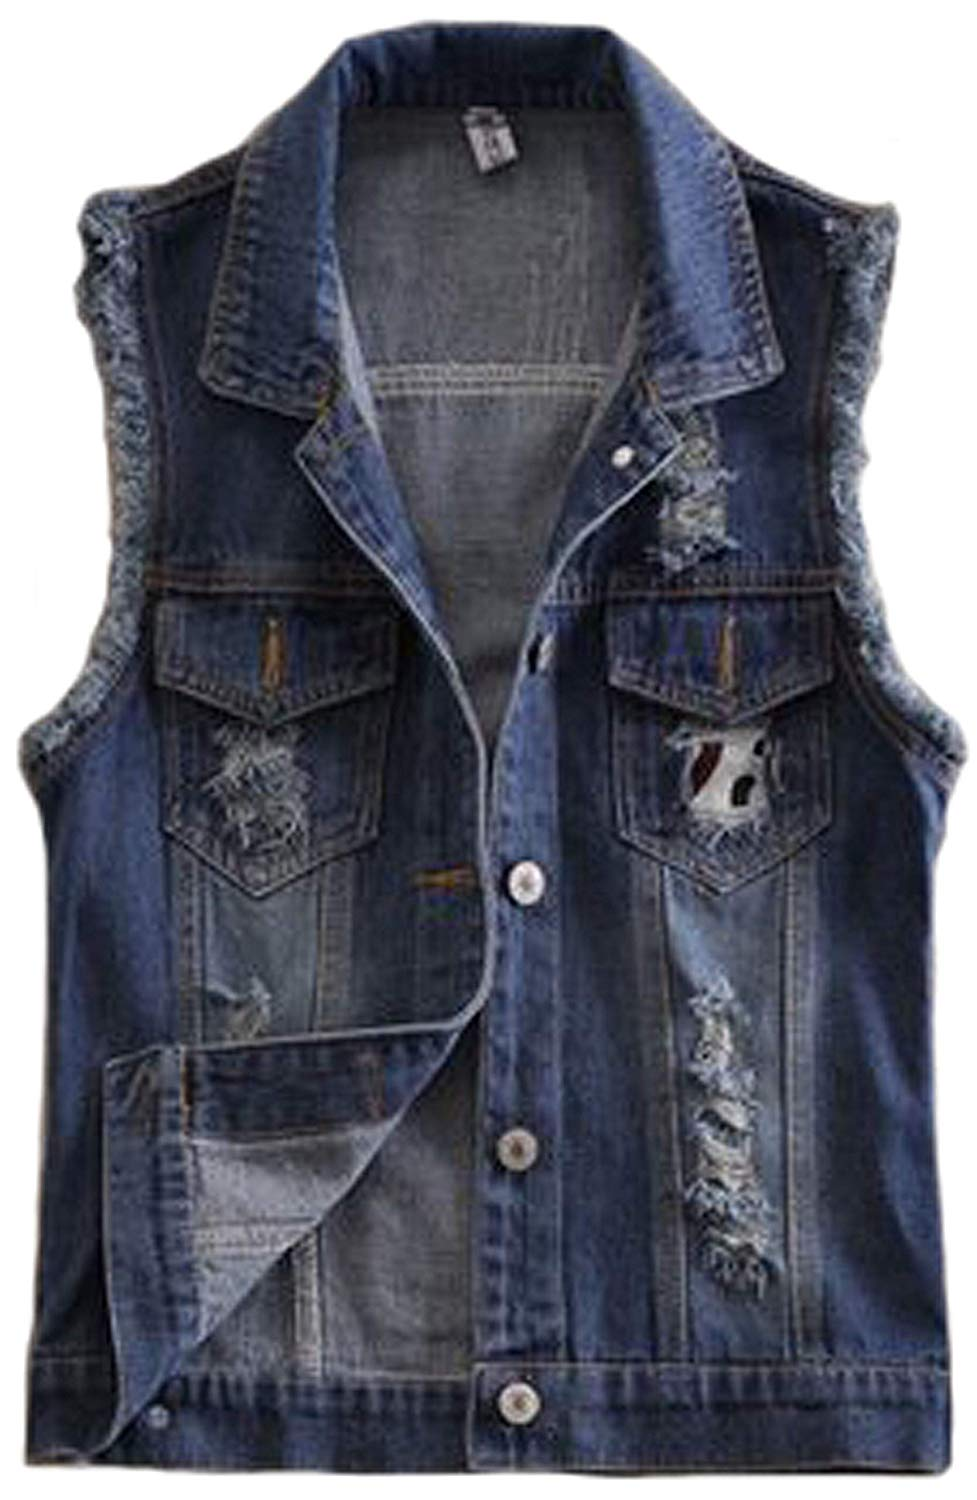 0621153a16833 Get Quotations · 2015 New Short Type Sleeveless Denim Jacket Hole Jeans  Vests